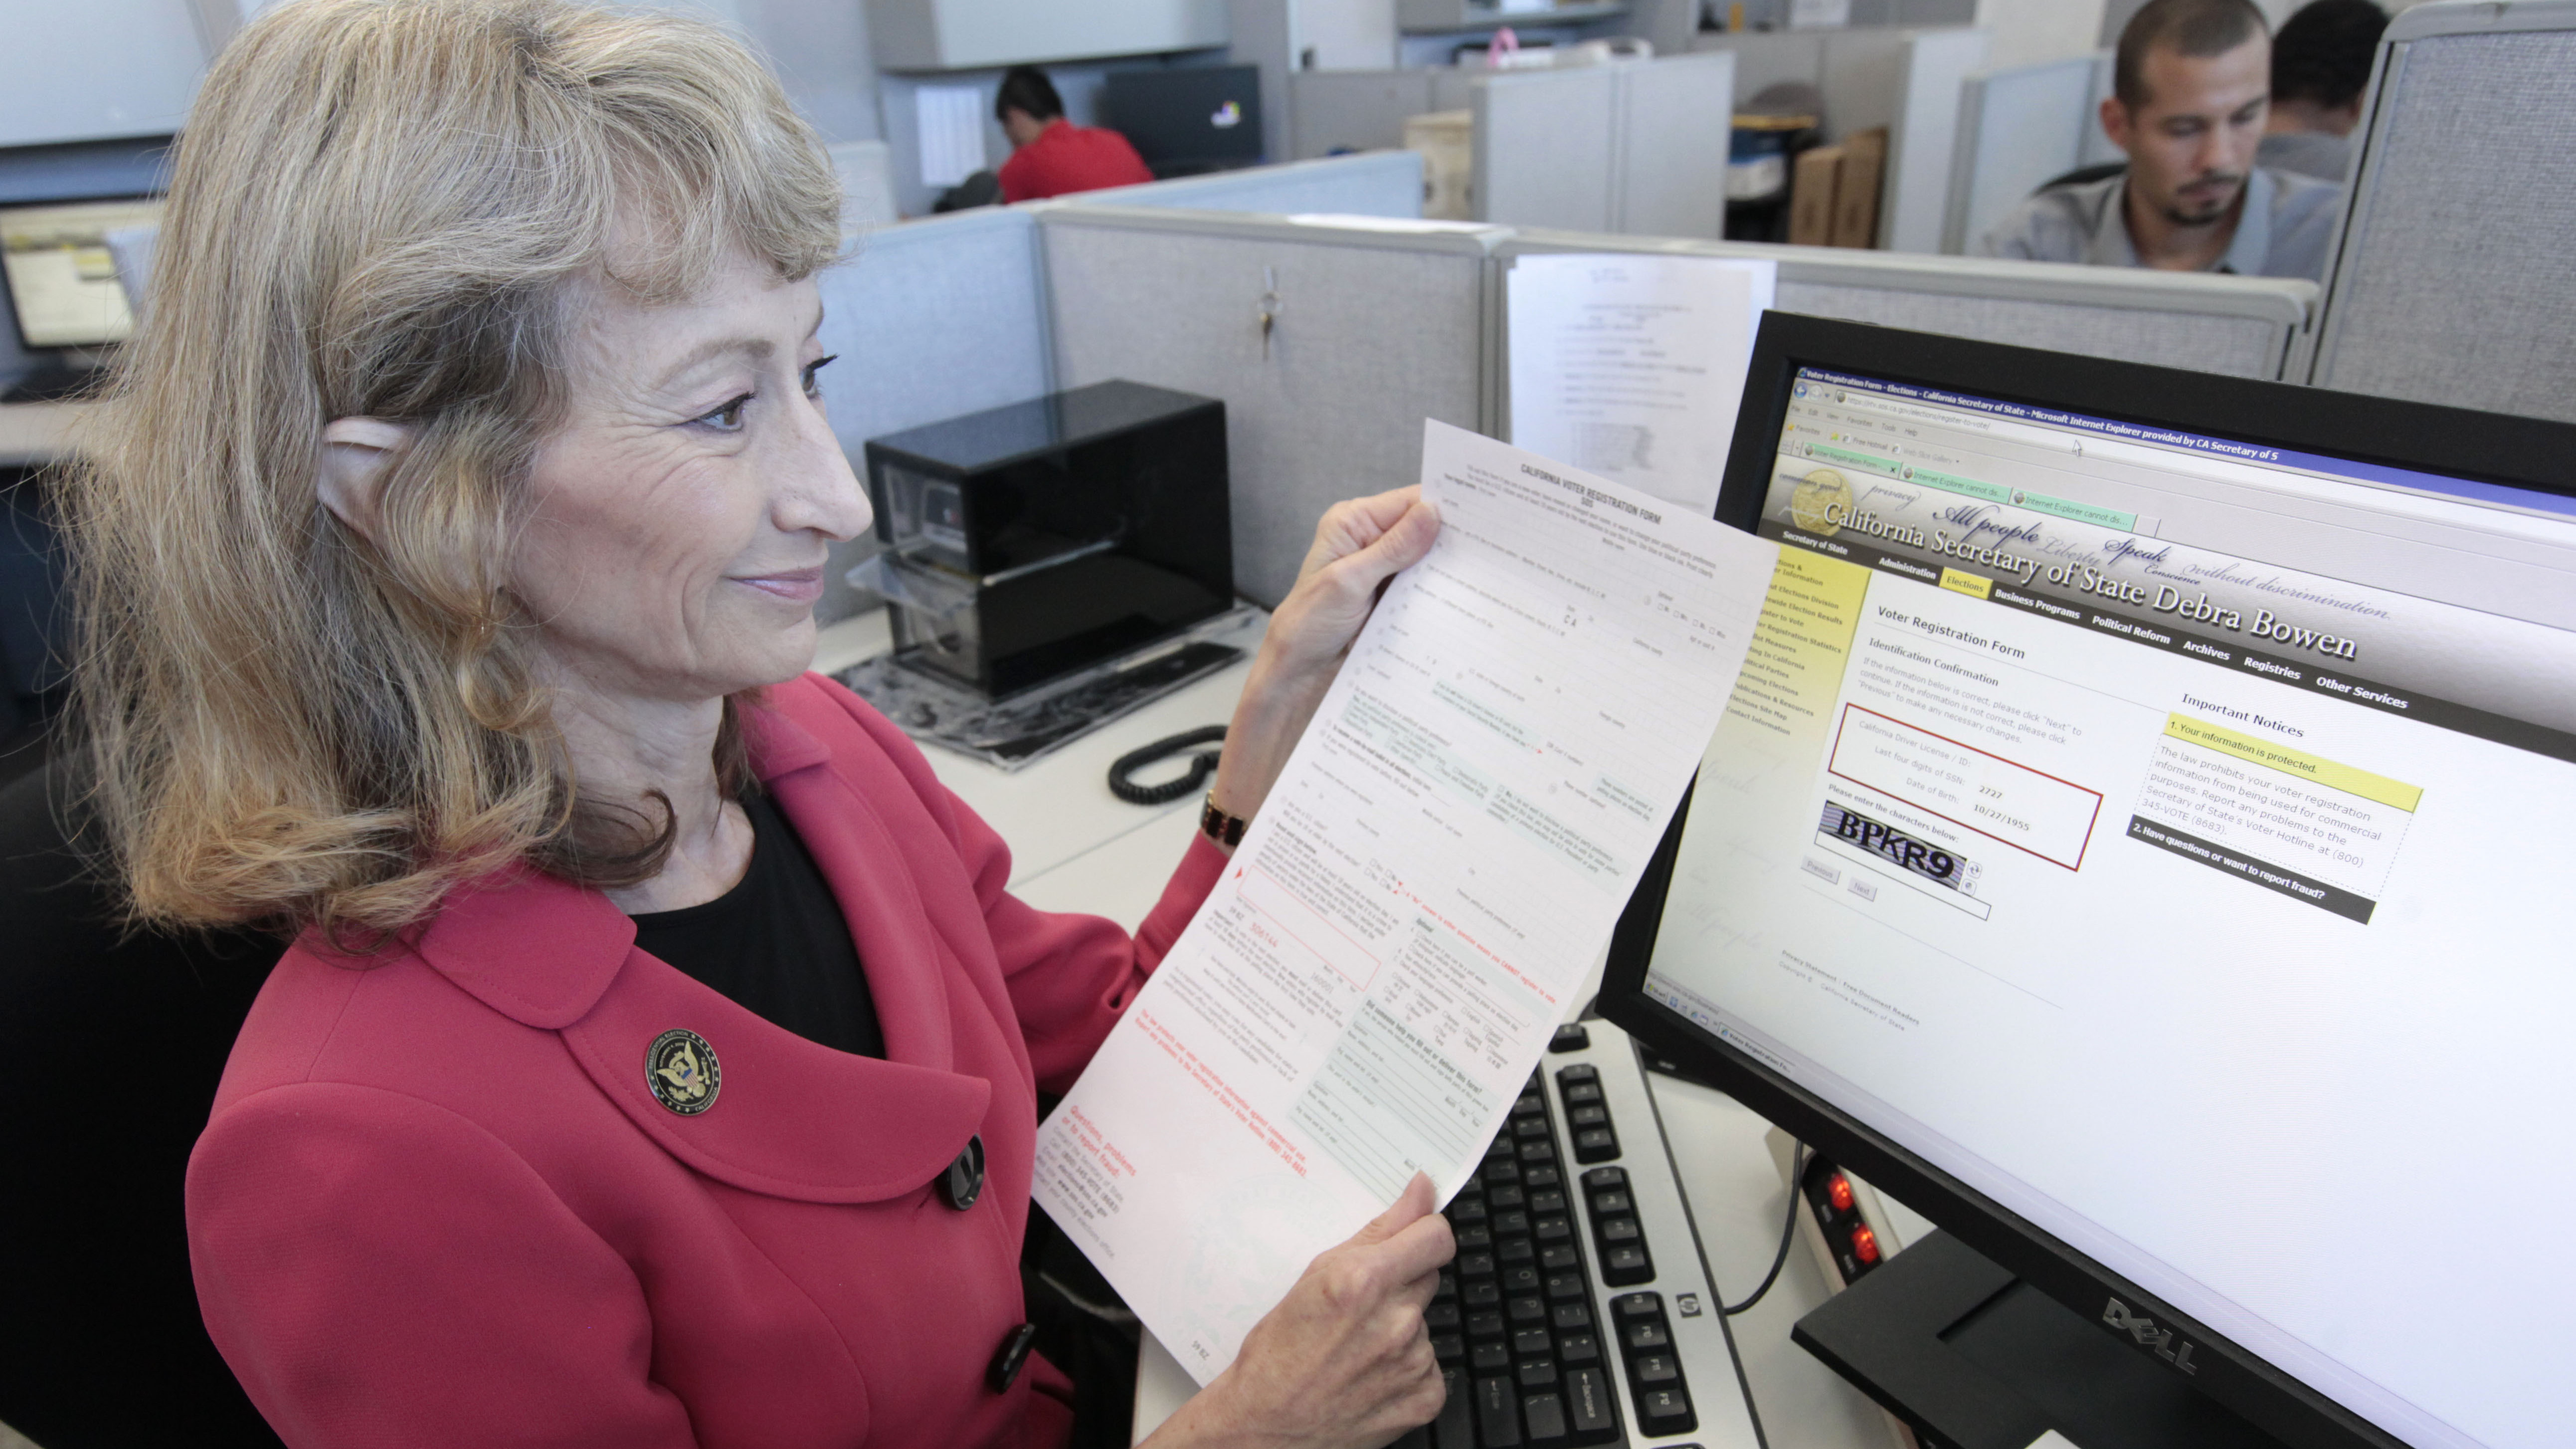 Debra Bowen, then California secretary of state, demonstrates the state's online voter registration system when it was launched in 2012. Voters can also still register using a paper form.